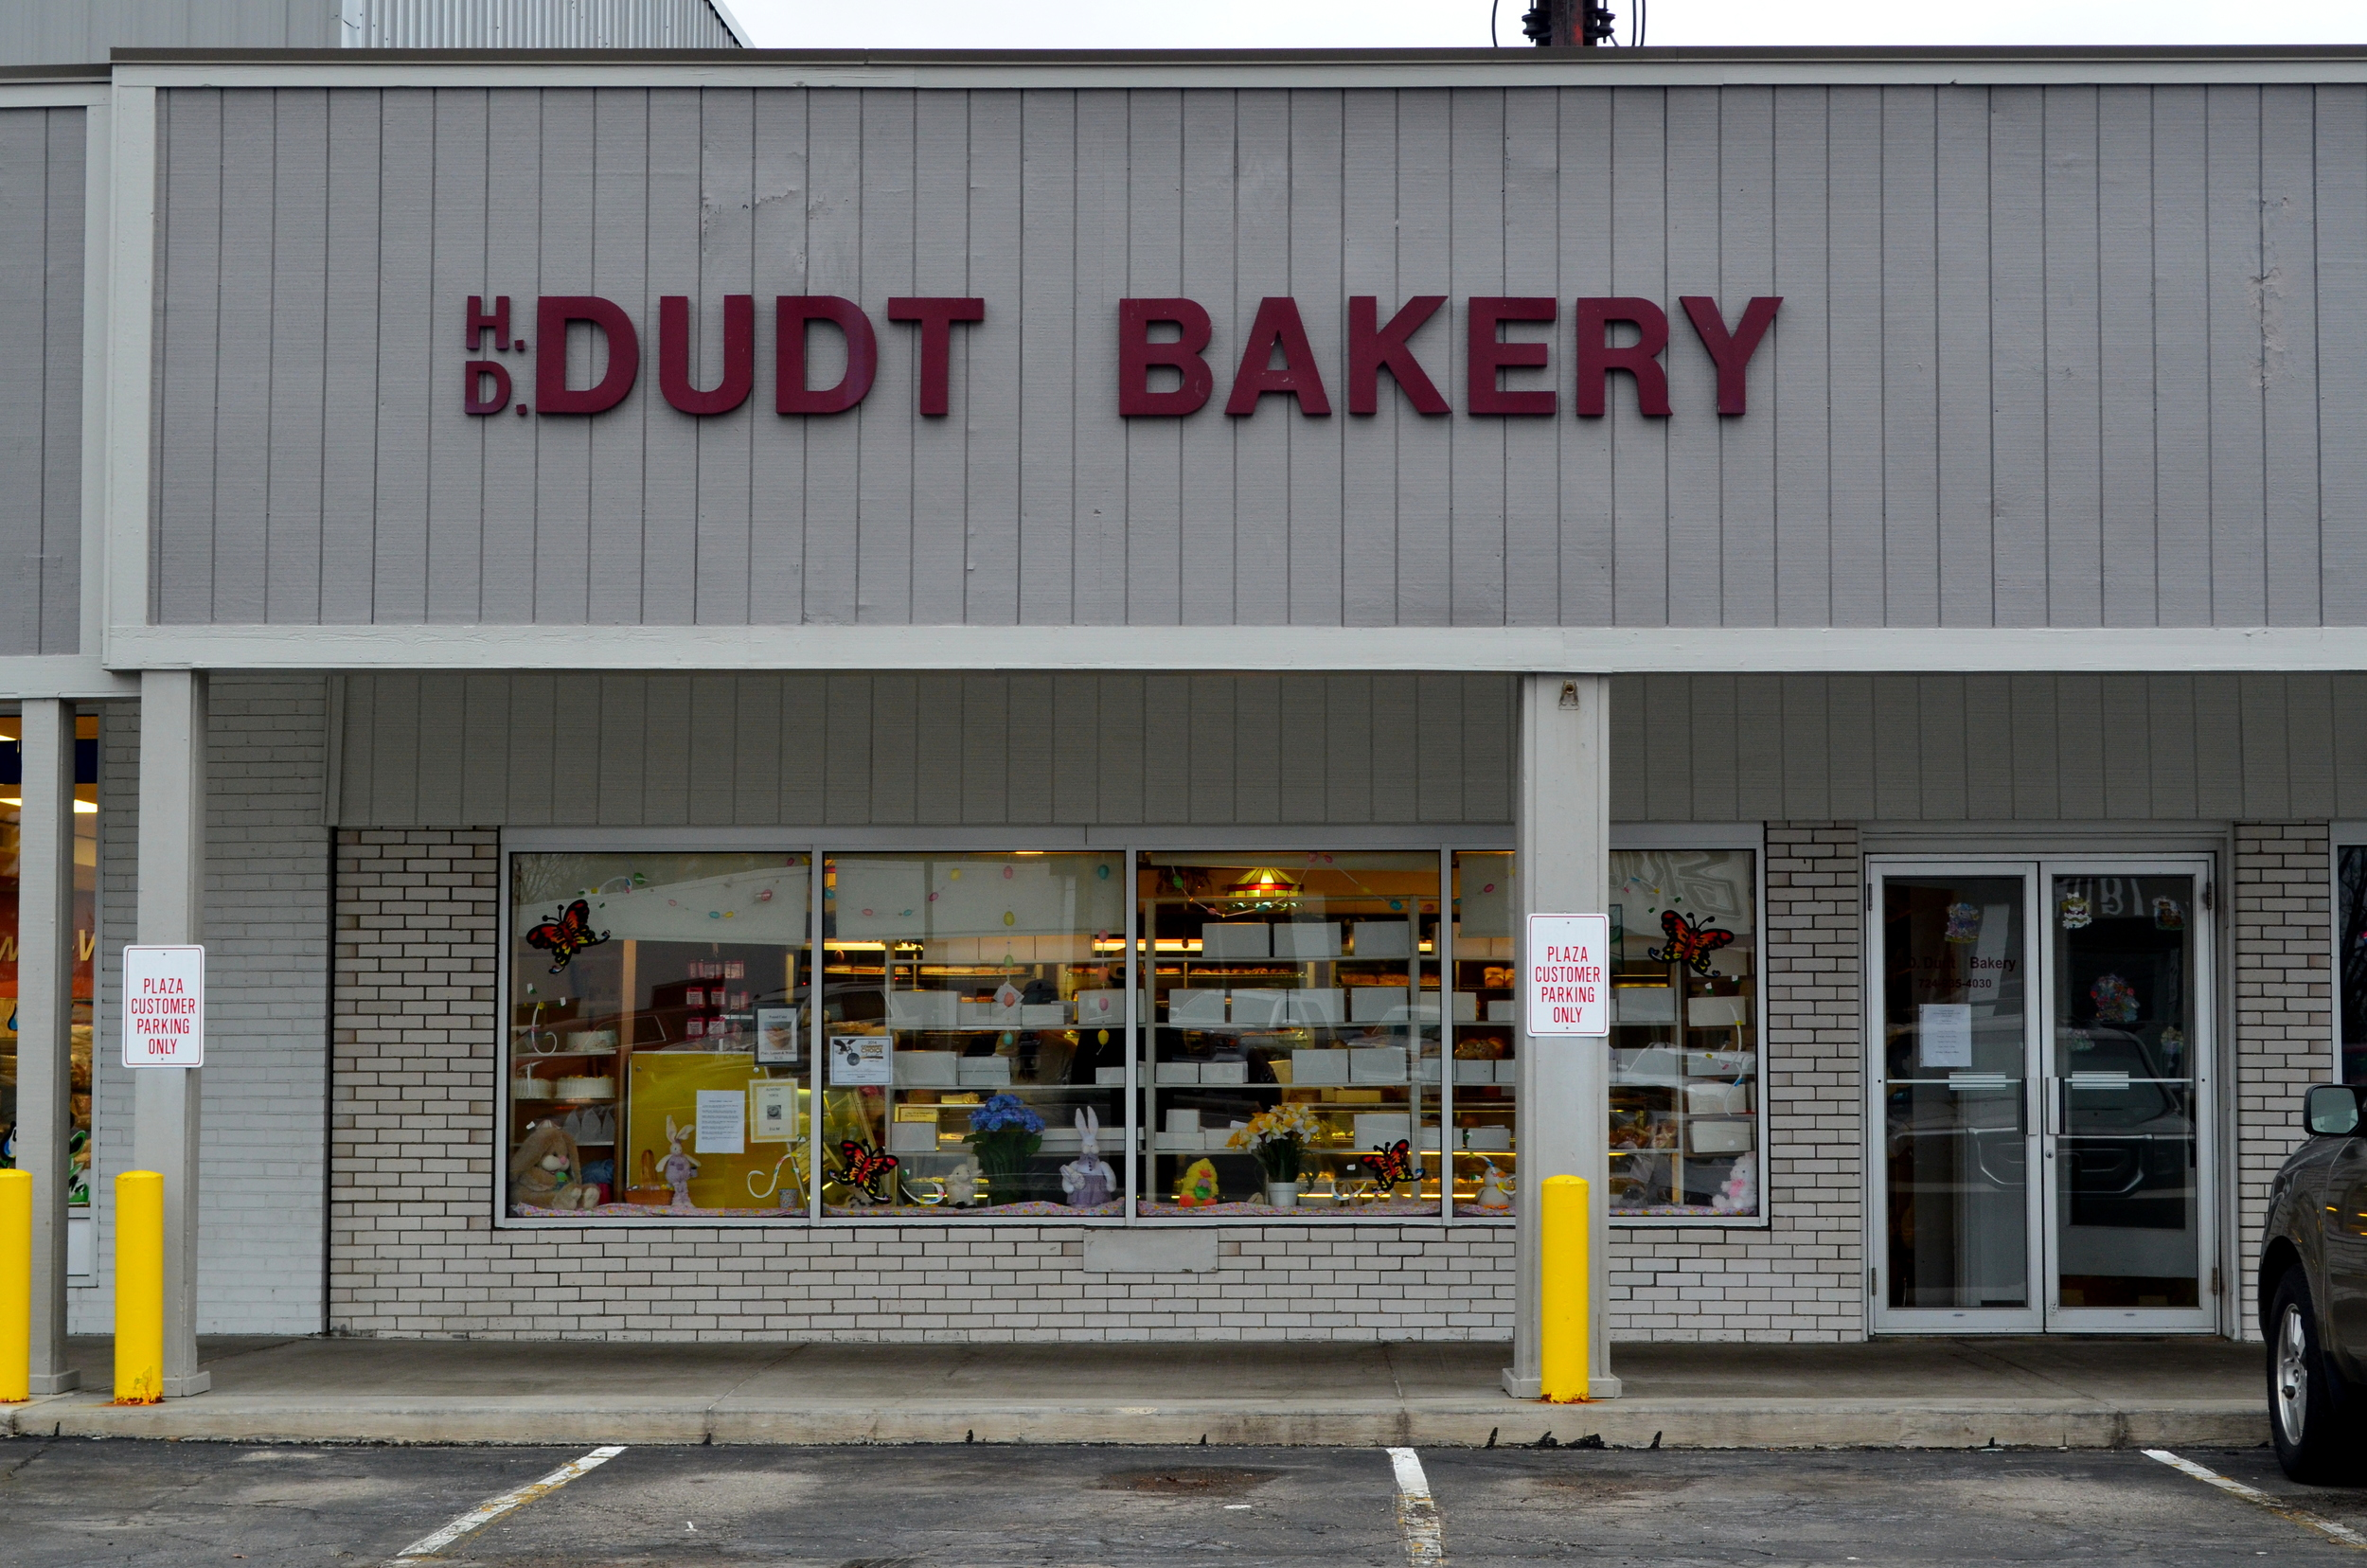 hd dudt bakery of wexford